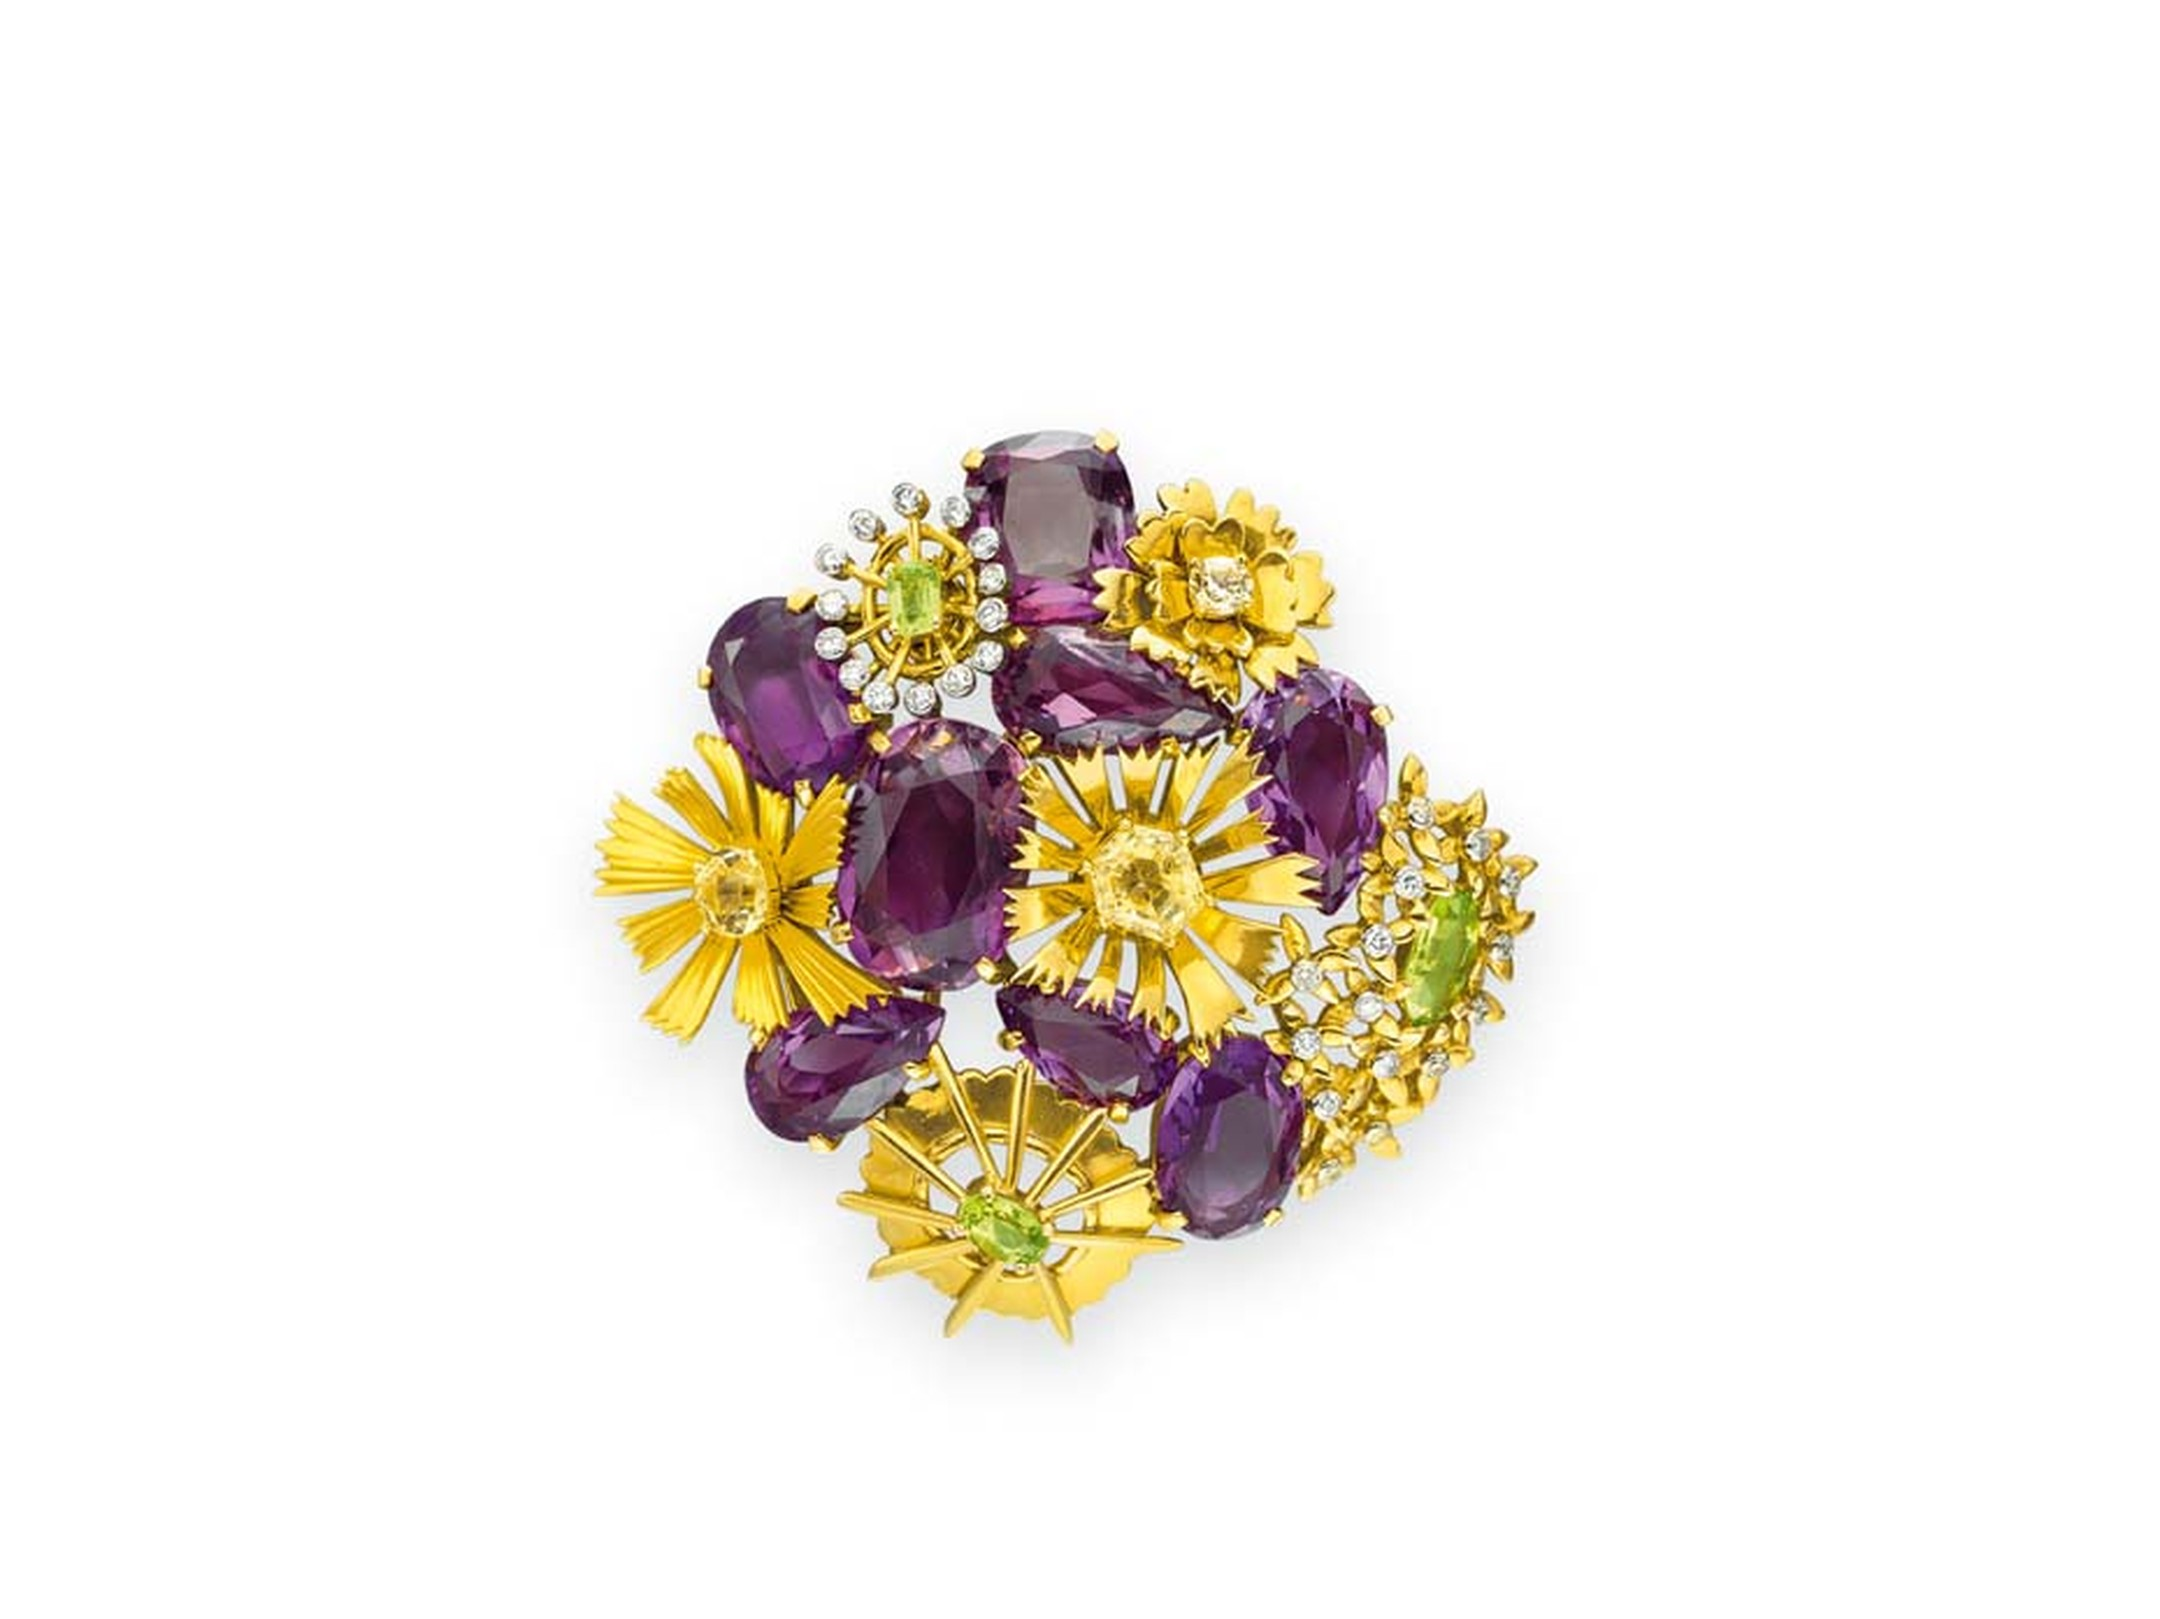 Jean Schlumberger's Daisy brooch from 1950 with yellow and white diamonds and amethysts © Christie's Images Limited.